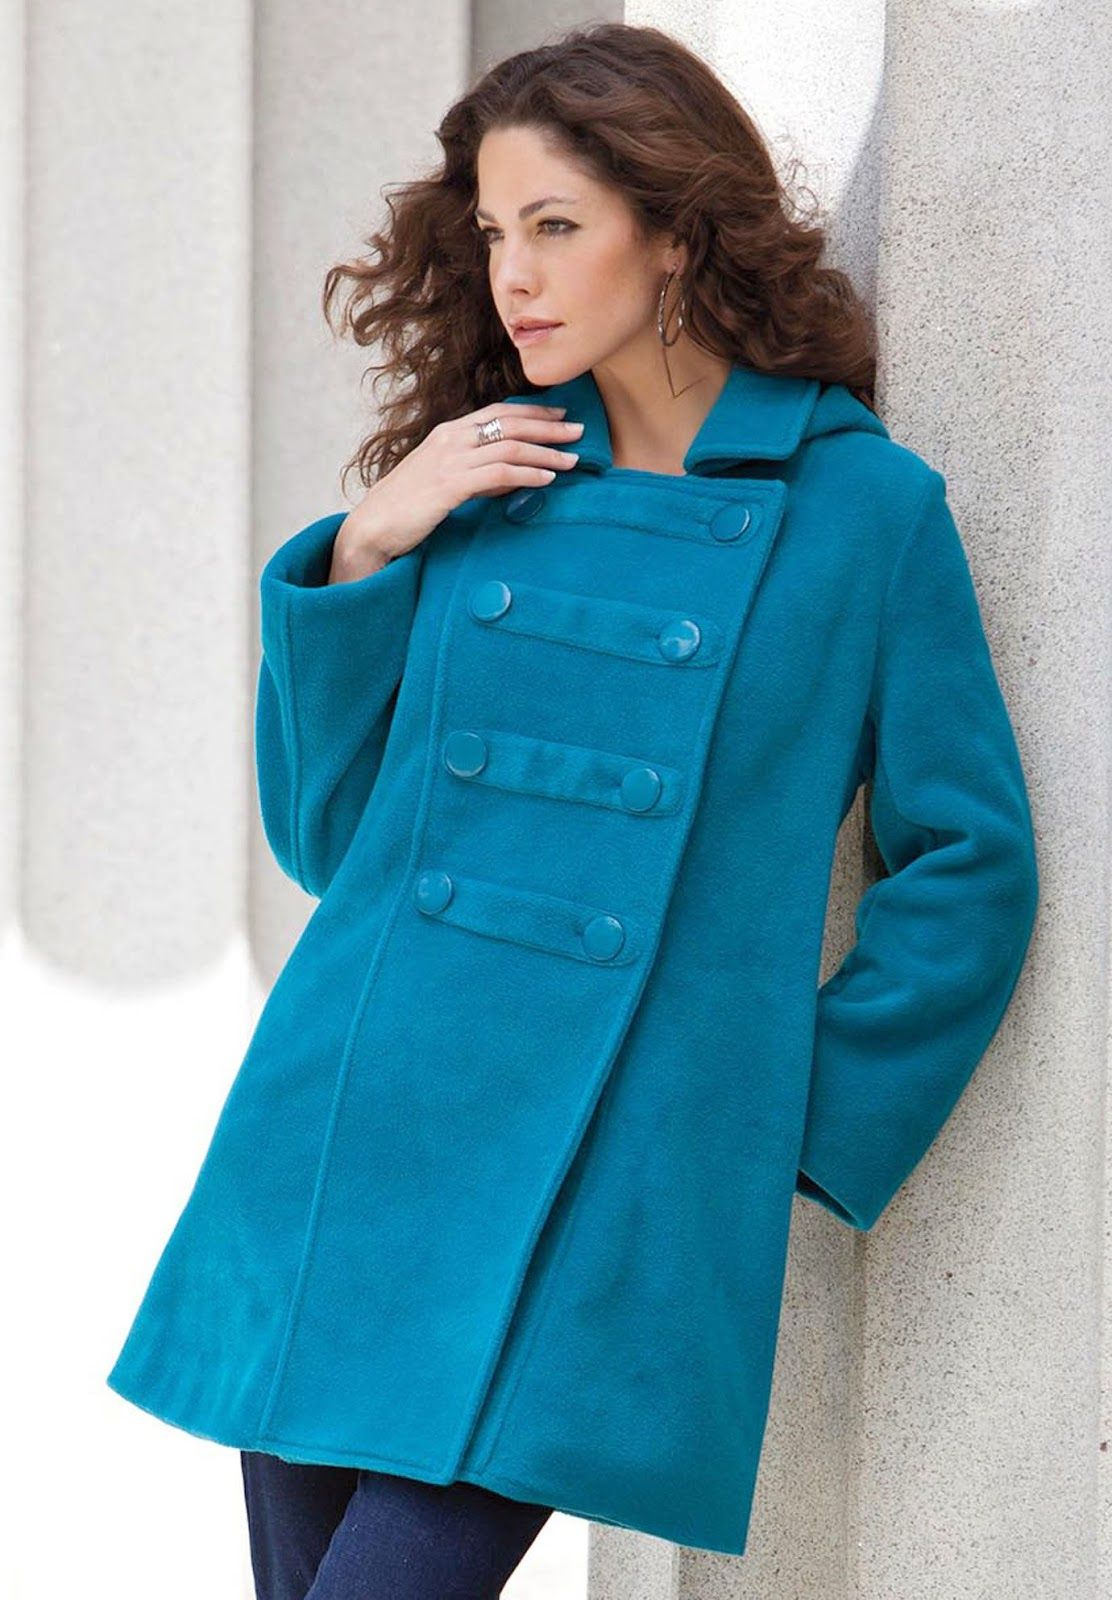 all about women's things: the best plus size spring coats